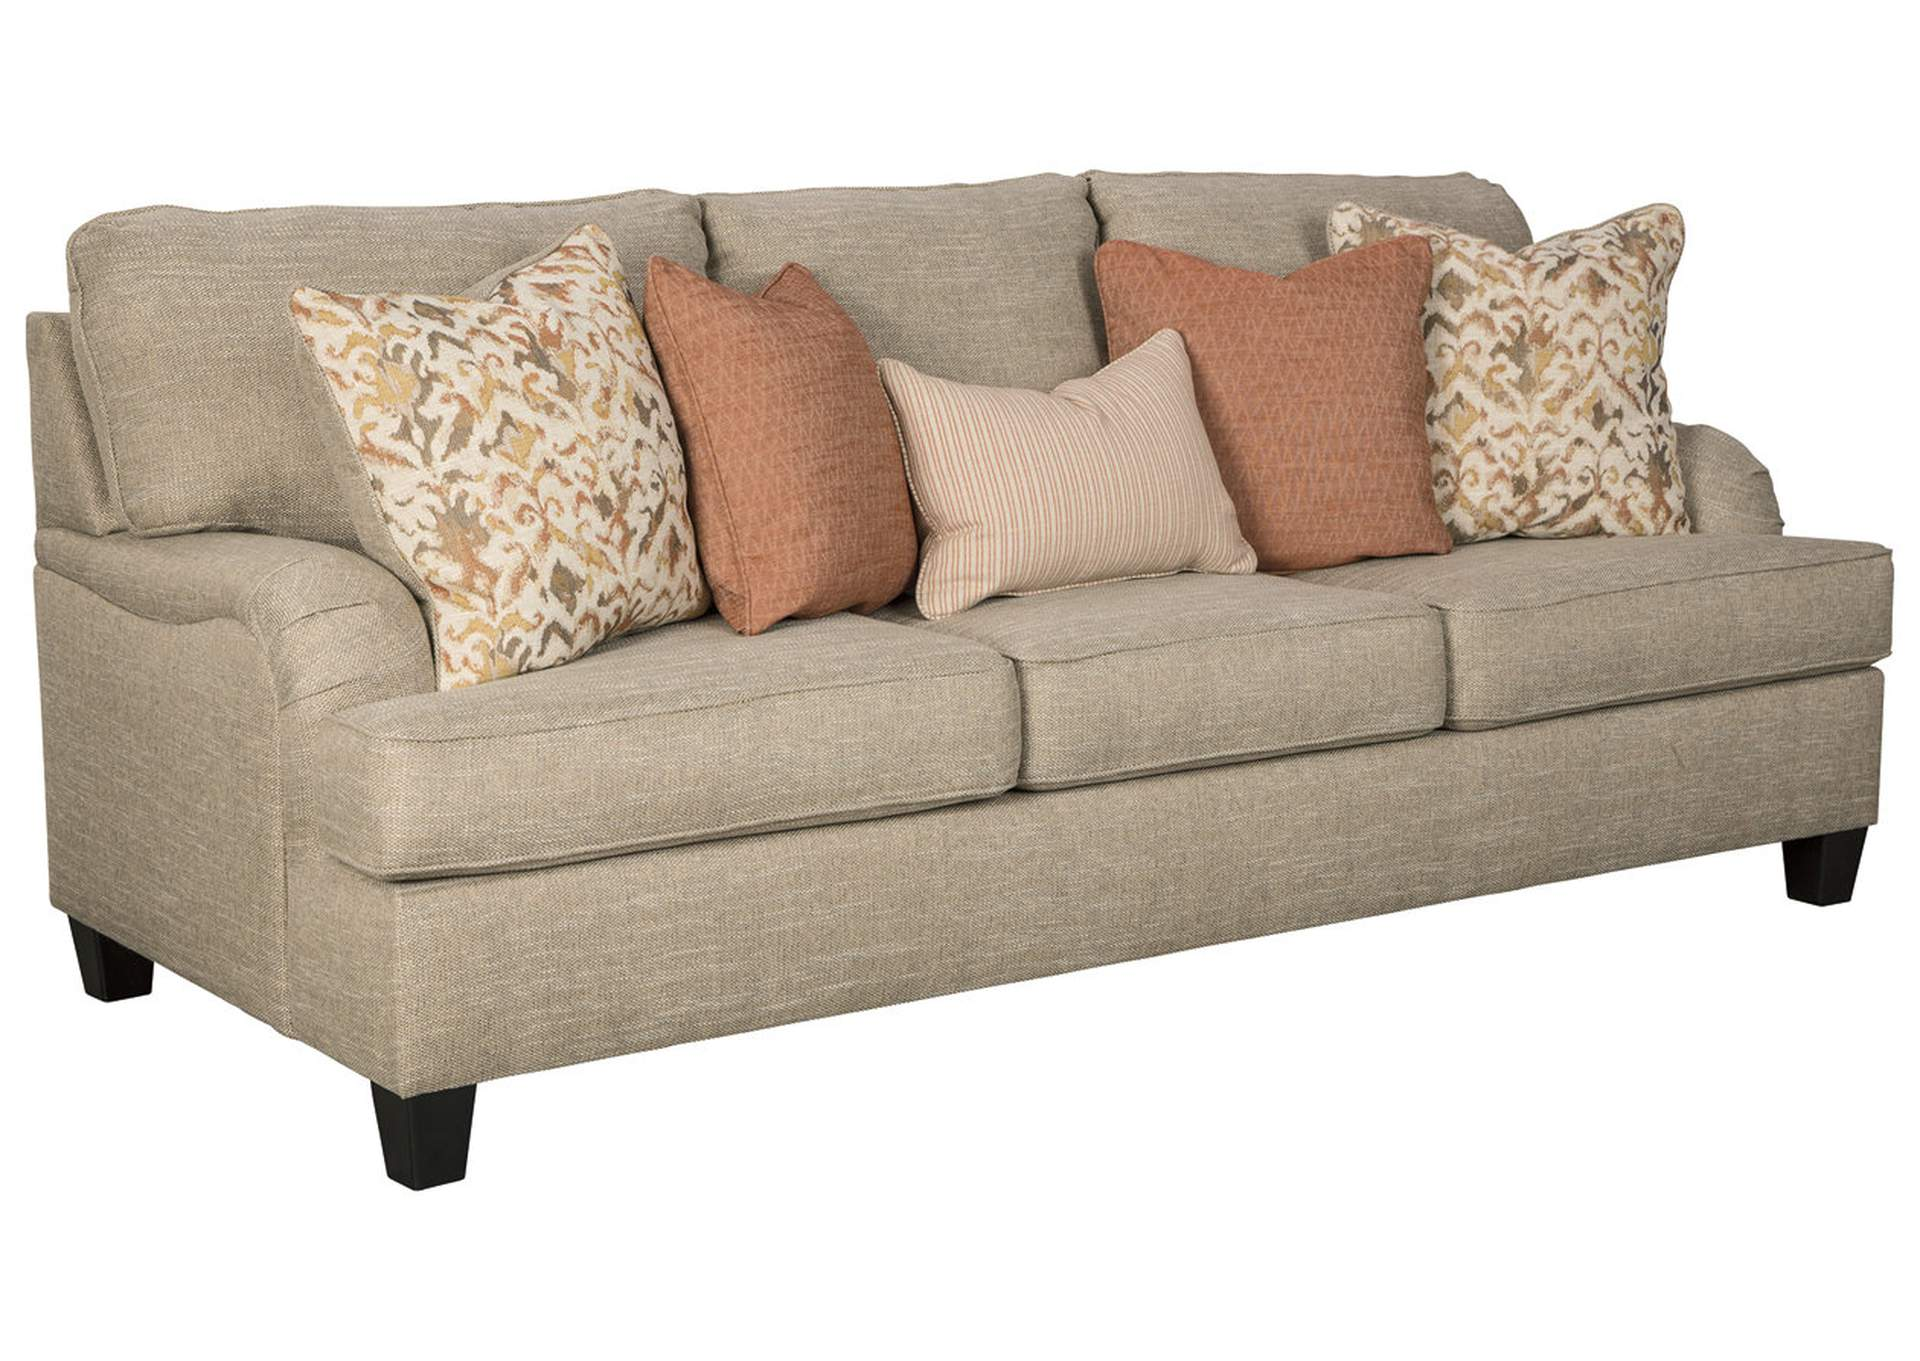 Almanza Wheat Queen Sofa Sleeper,Signature Design By Ashley